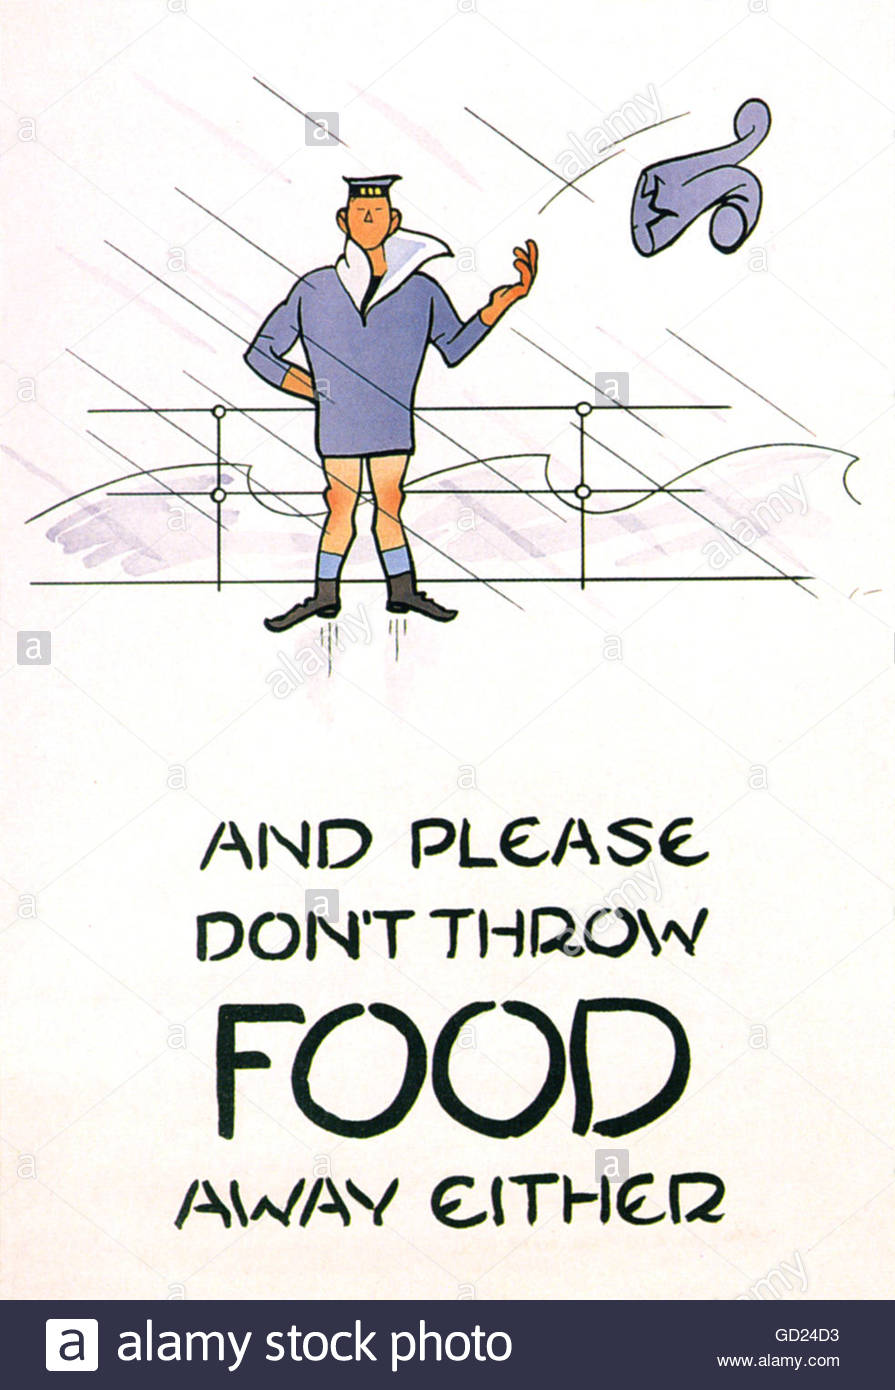 events, Second World War / WWII, propaganda, Great Britain, poster, 'And please don't throw food away either', - Stock Image